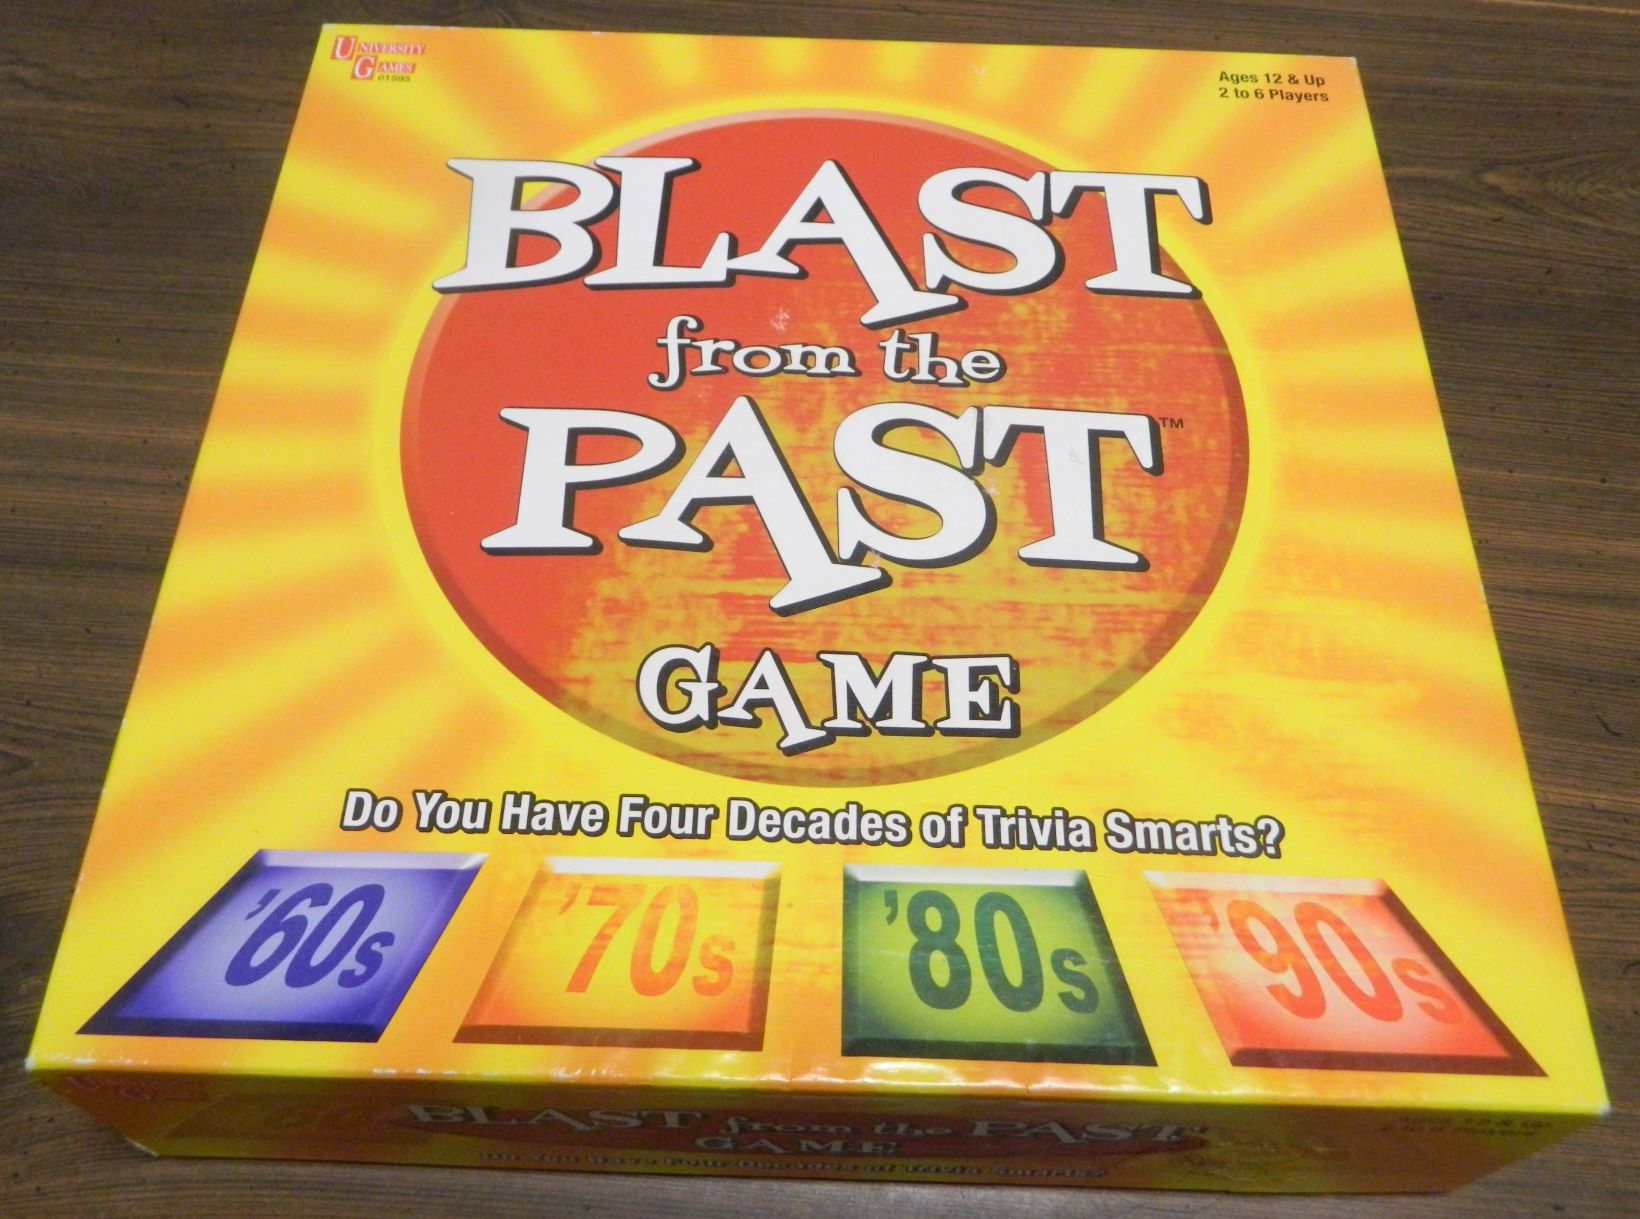 Box for Blast from the Past